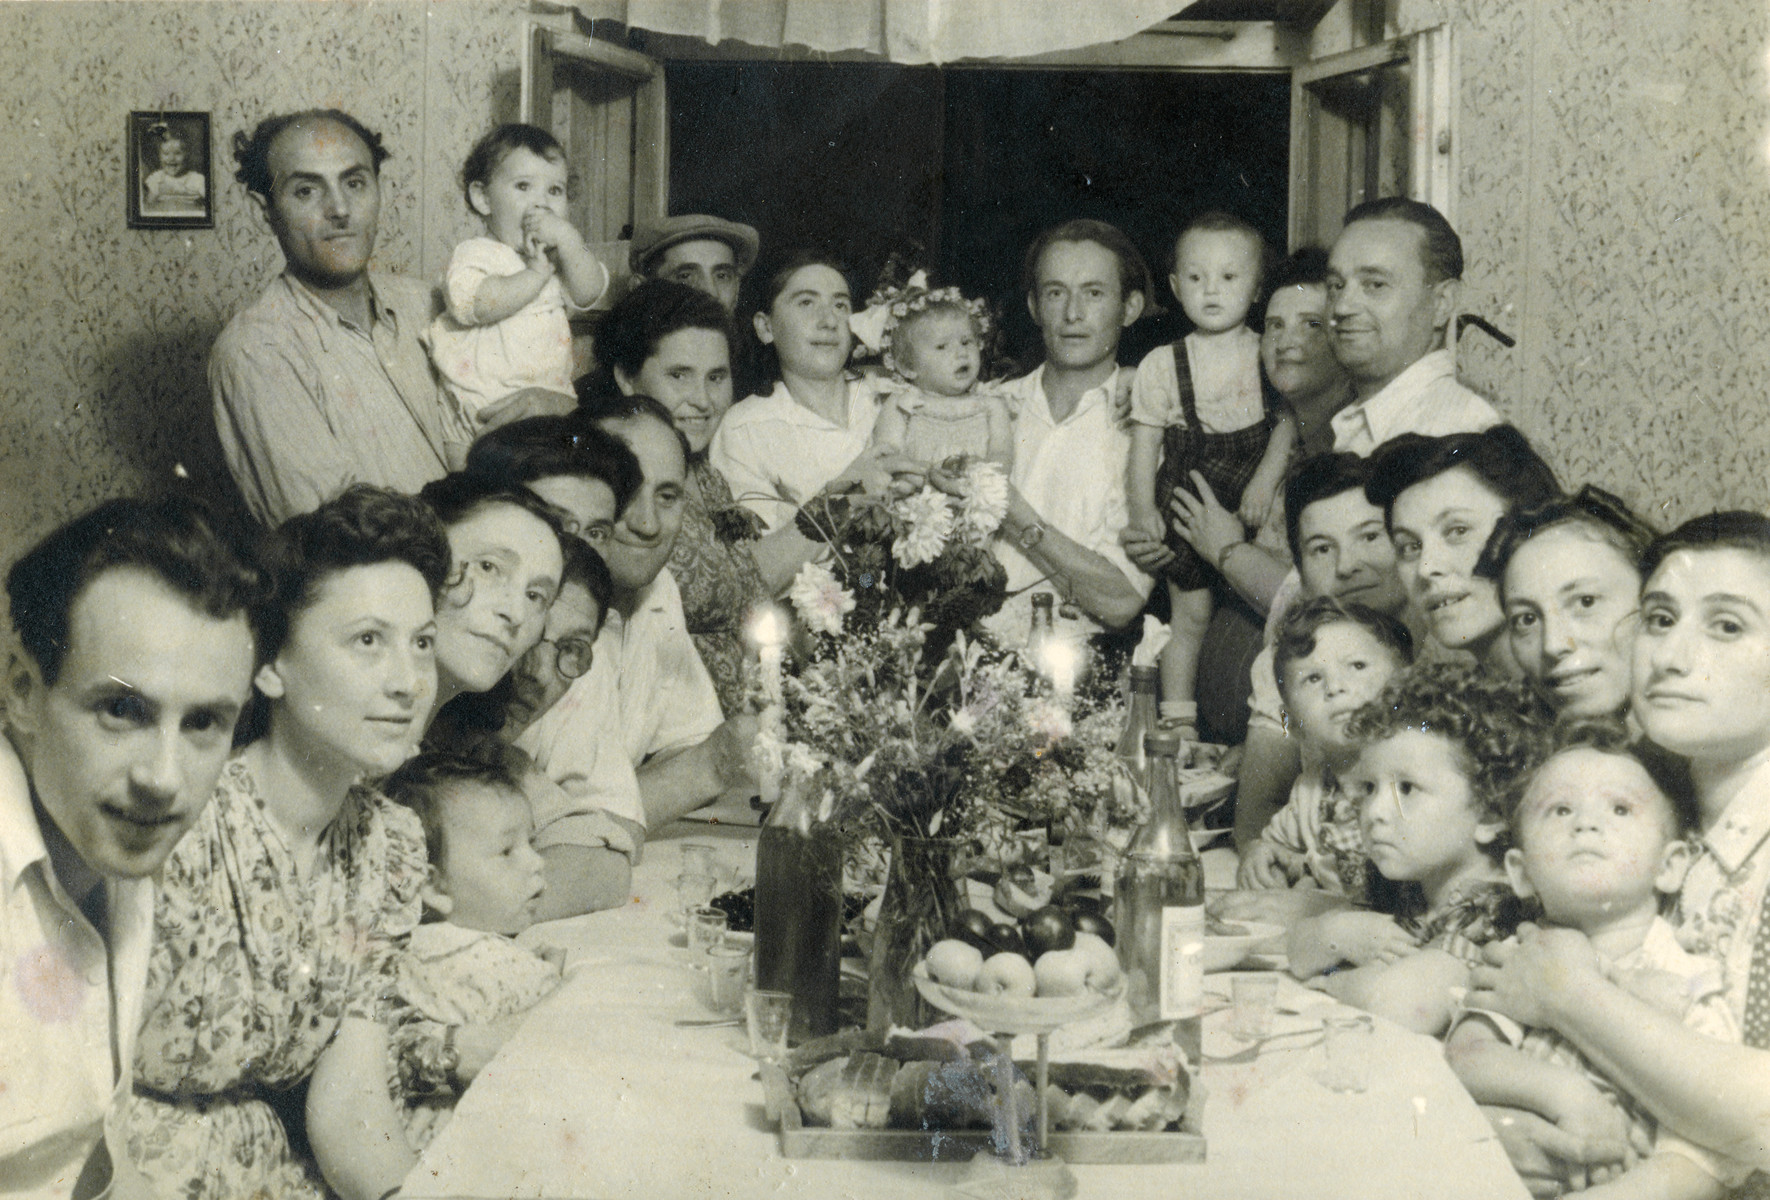 Hannah (child top right) and her parents Zvi and Ida Szklut attend a birthday party with lots of young toddlers [probably in the Bergen-Belsen displaced persons camp].